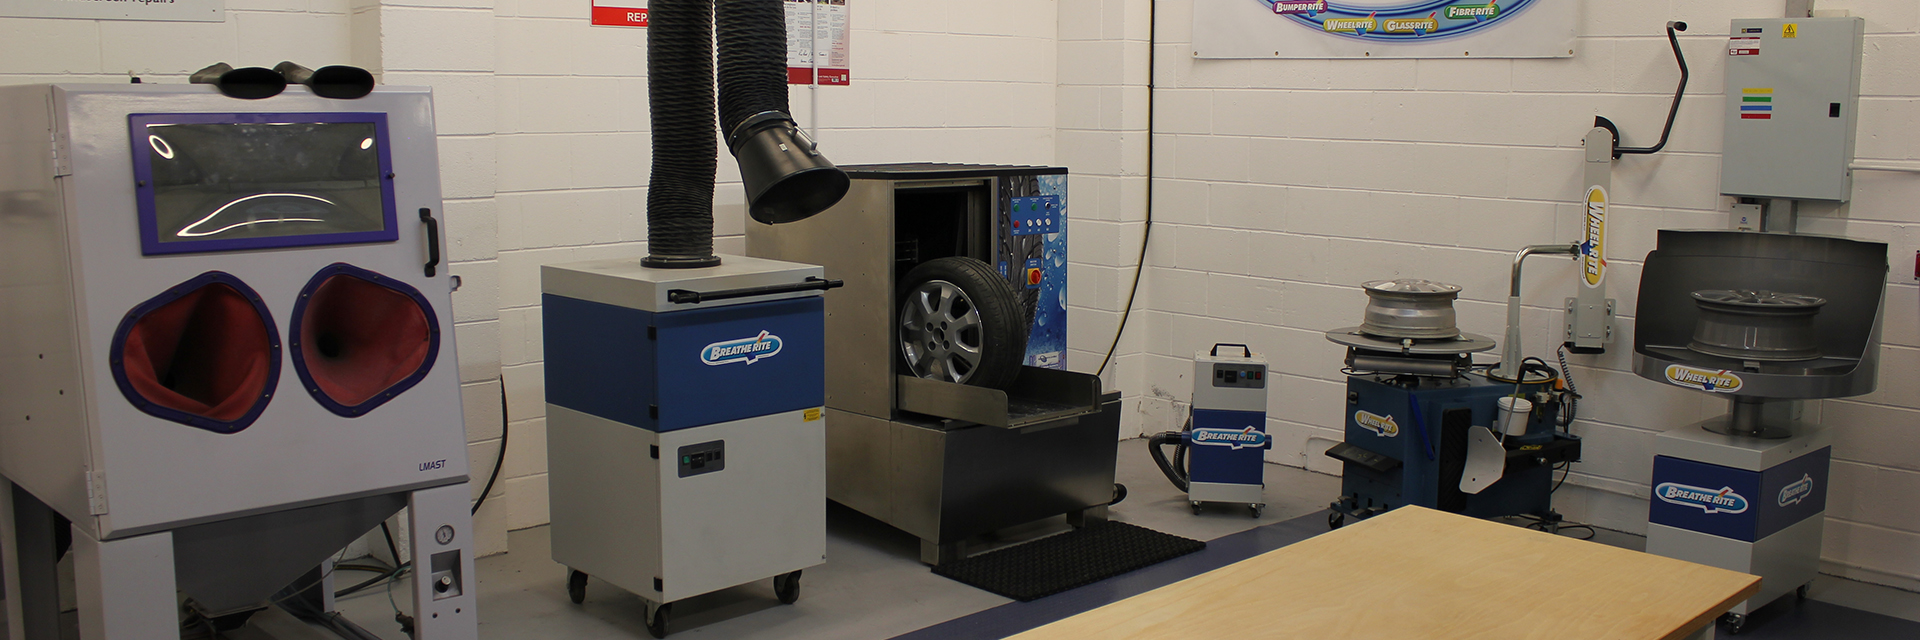 Photo showing Smart Repair Systems at Ayce Systems Demonstration showroom